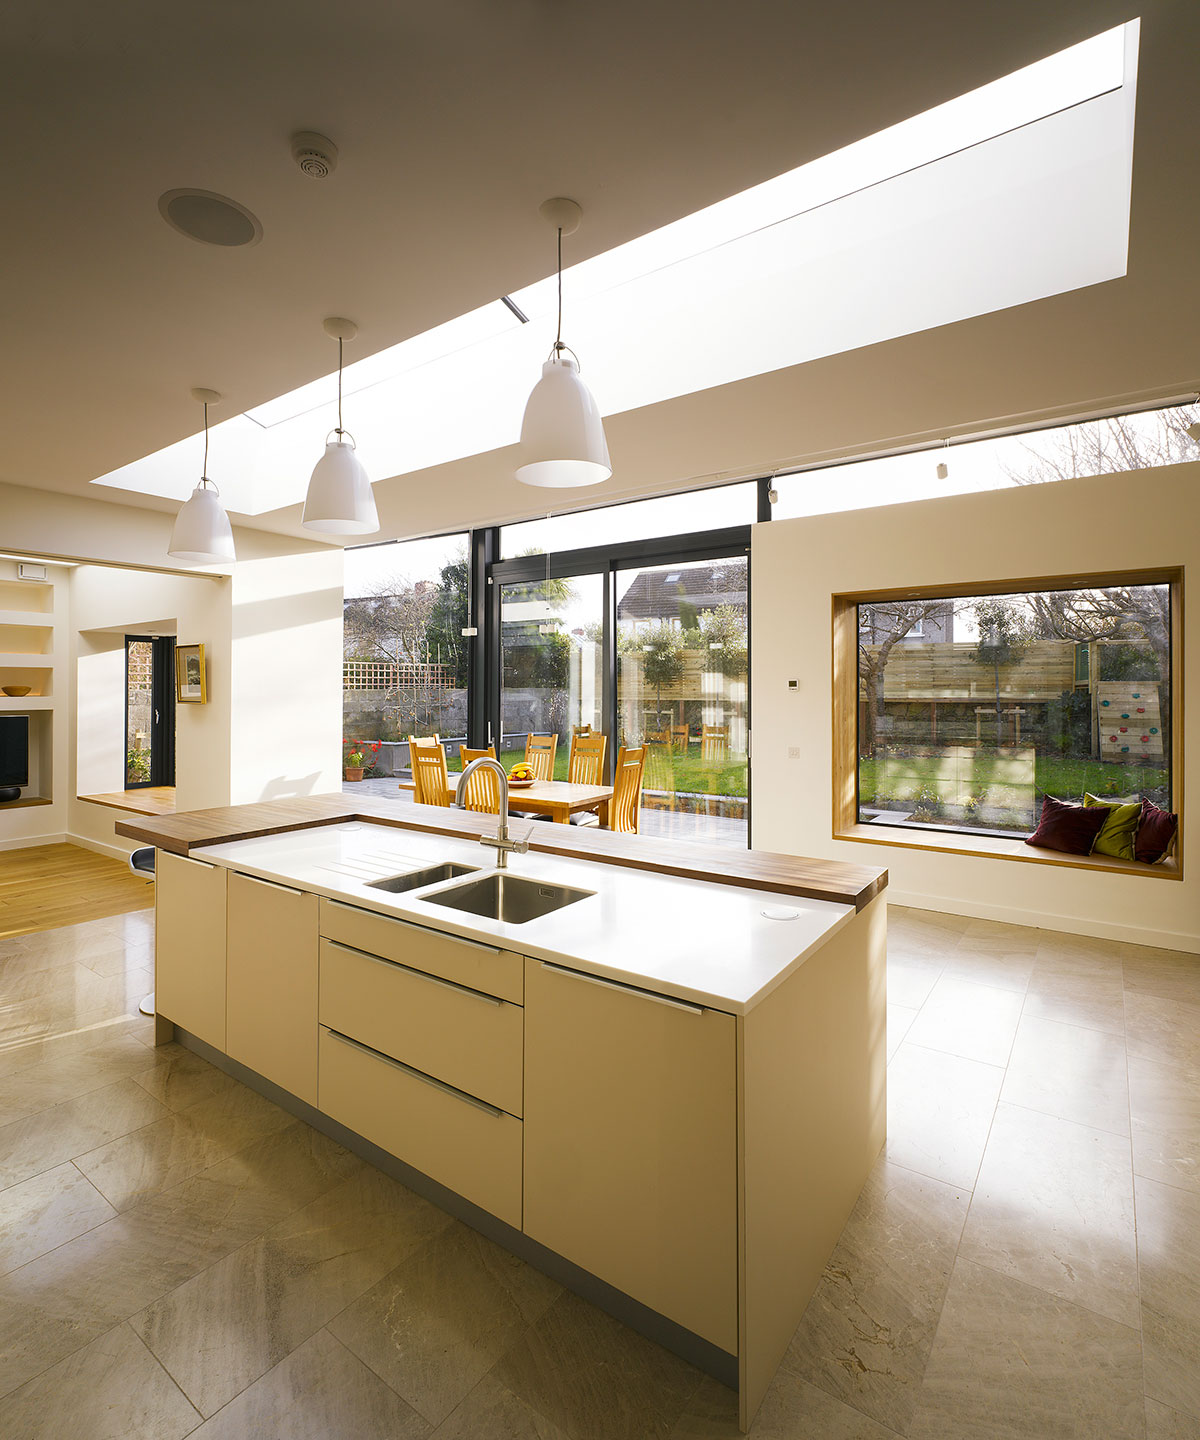 Dartry: Environmental And Energy Efficient